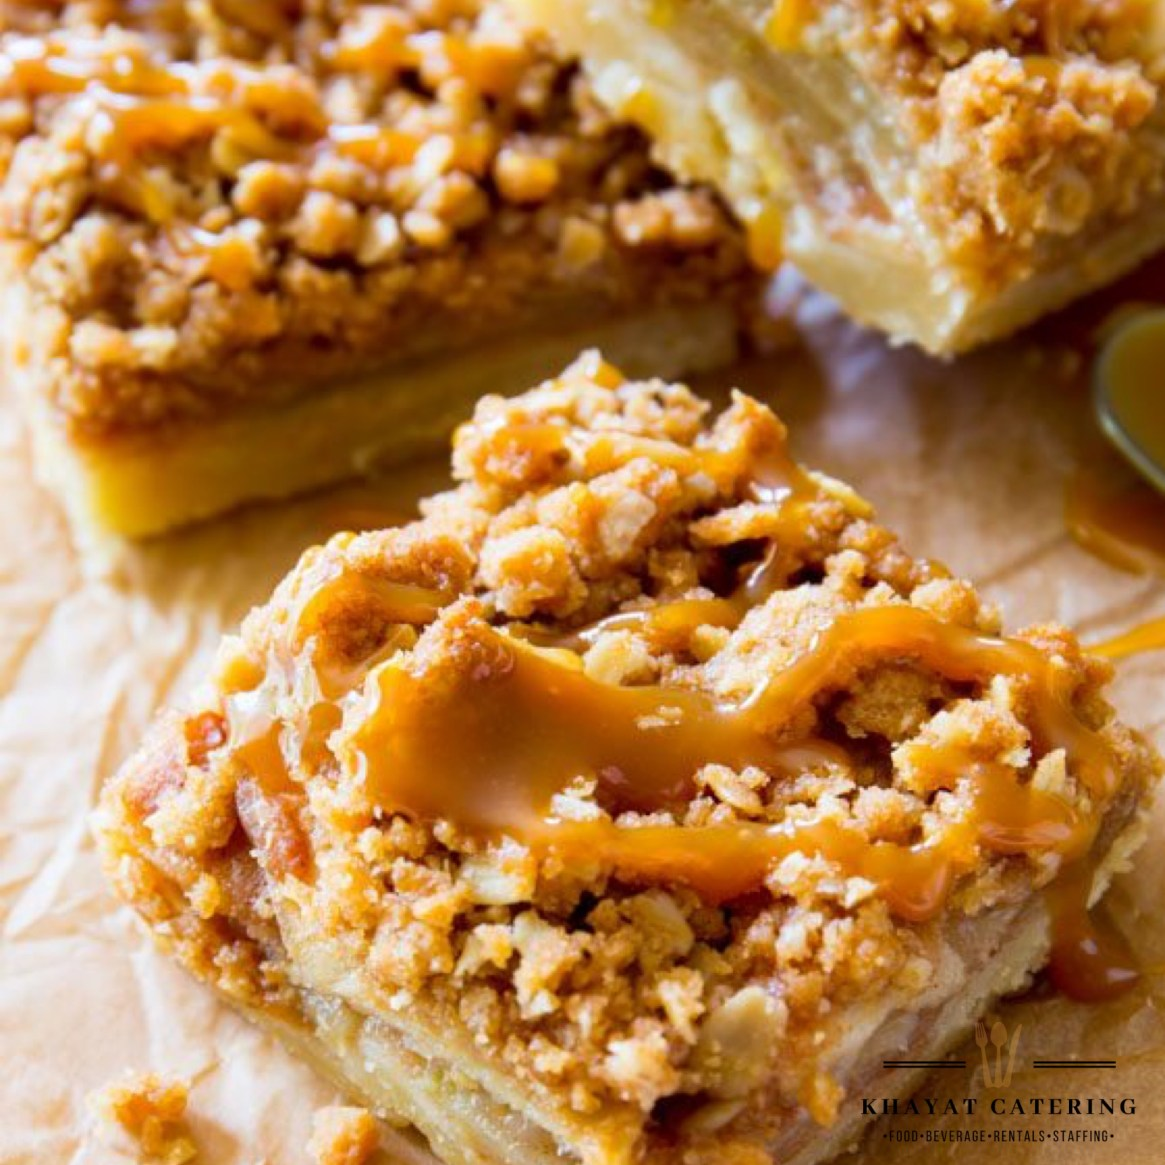 Khayat Catering carmel Apple bars